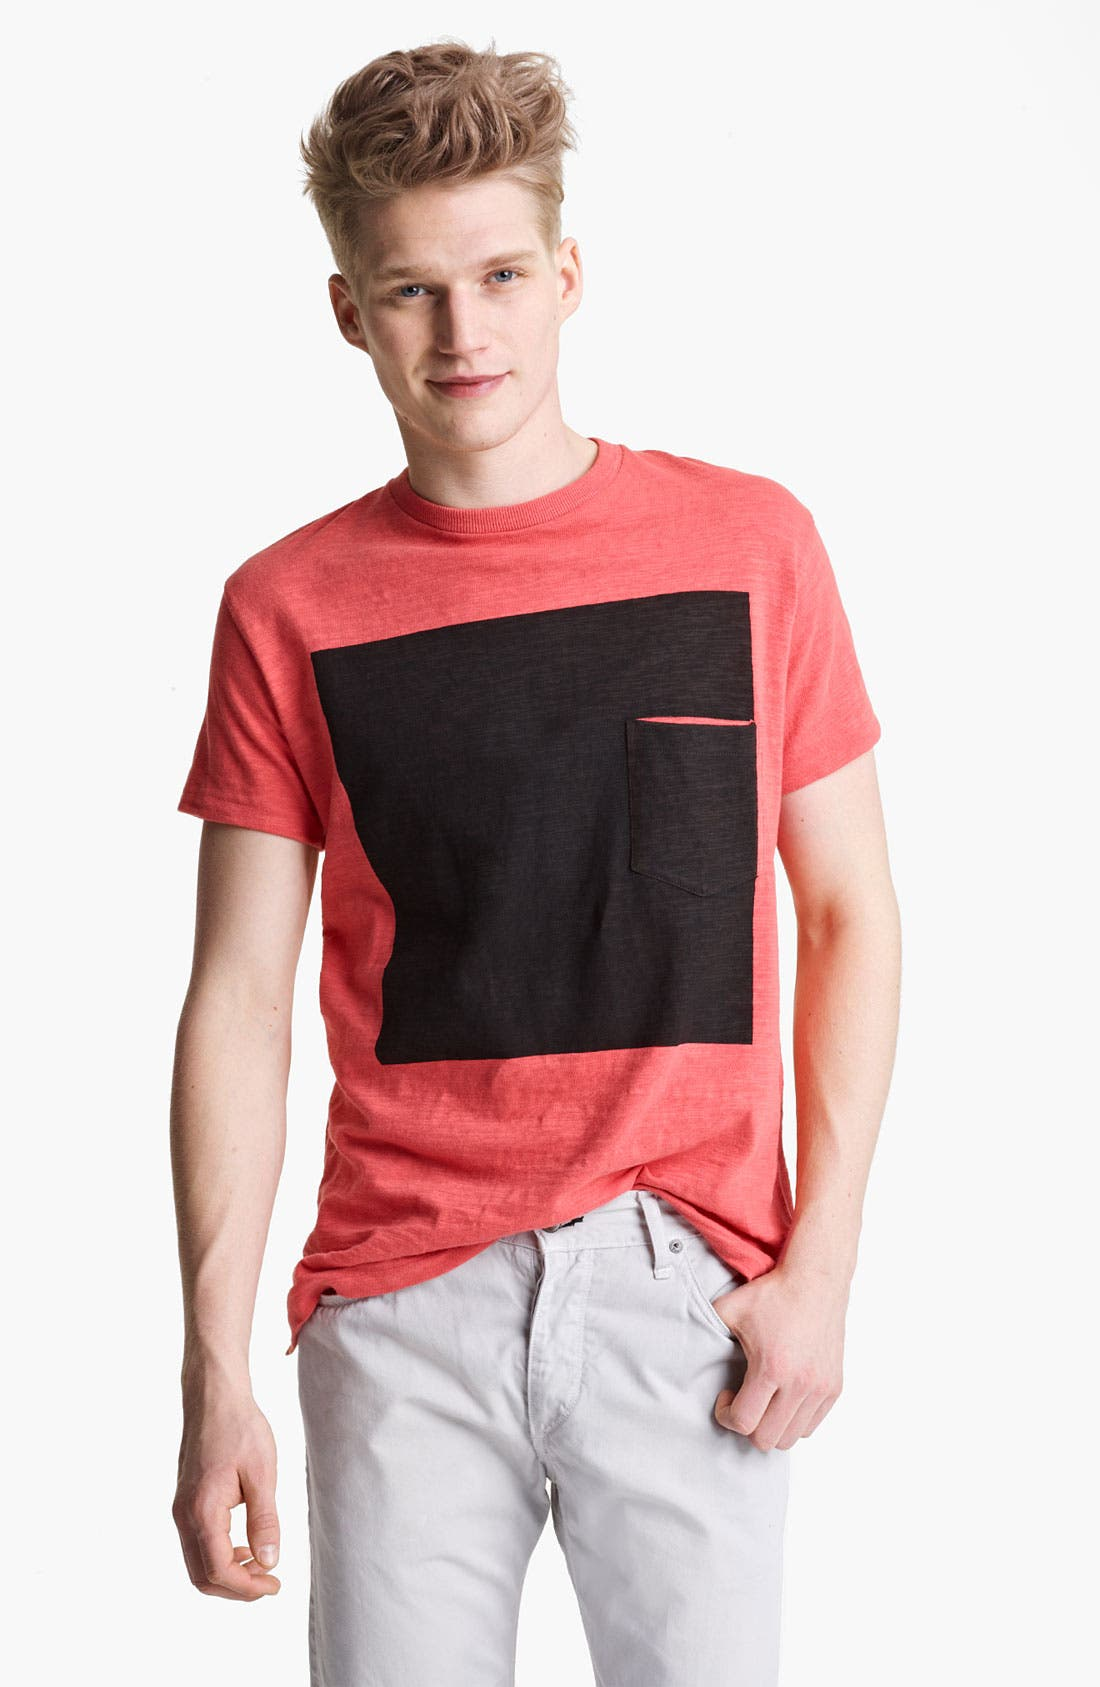 Alternate Image 1 Selected - rag & bone Square Print Graphic T-Shirt